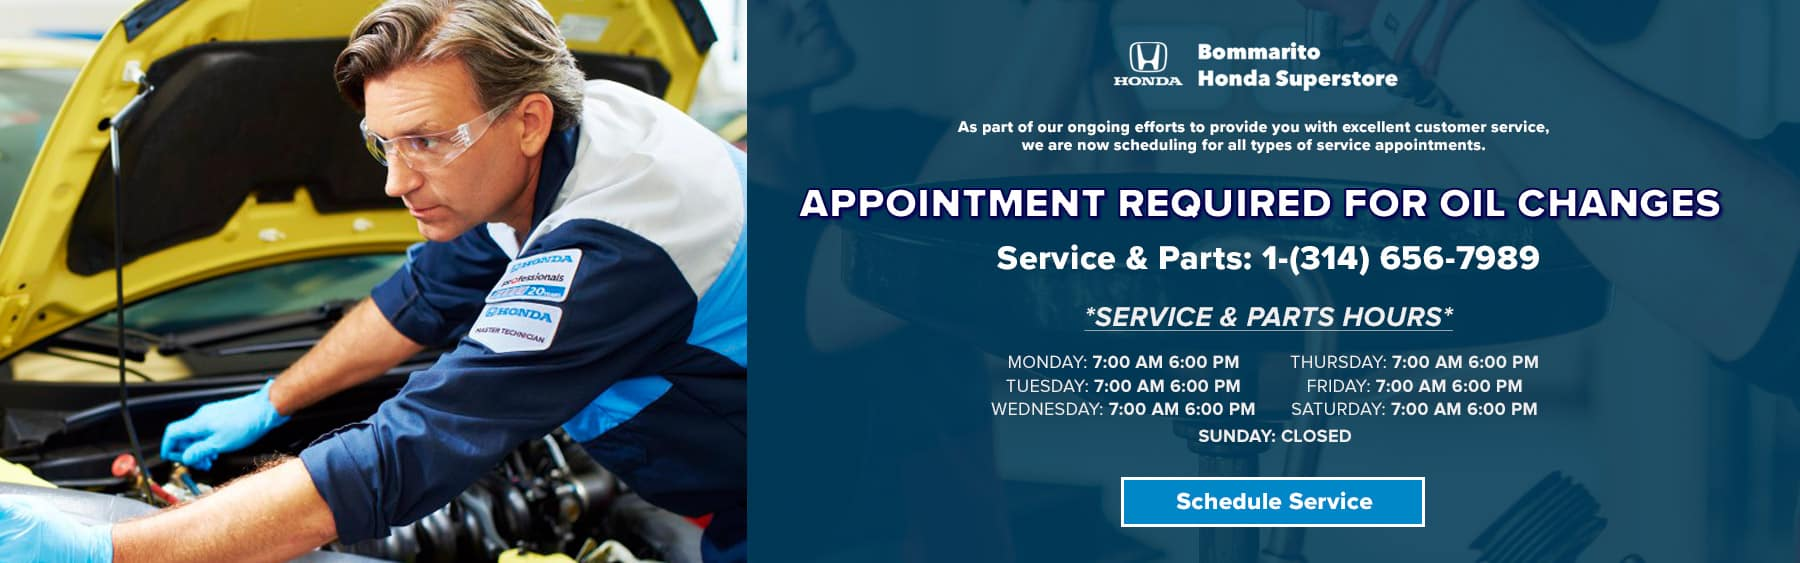 Appointment required for oil Changes